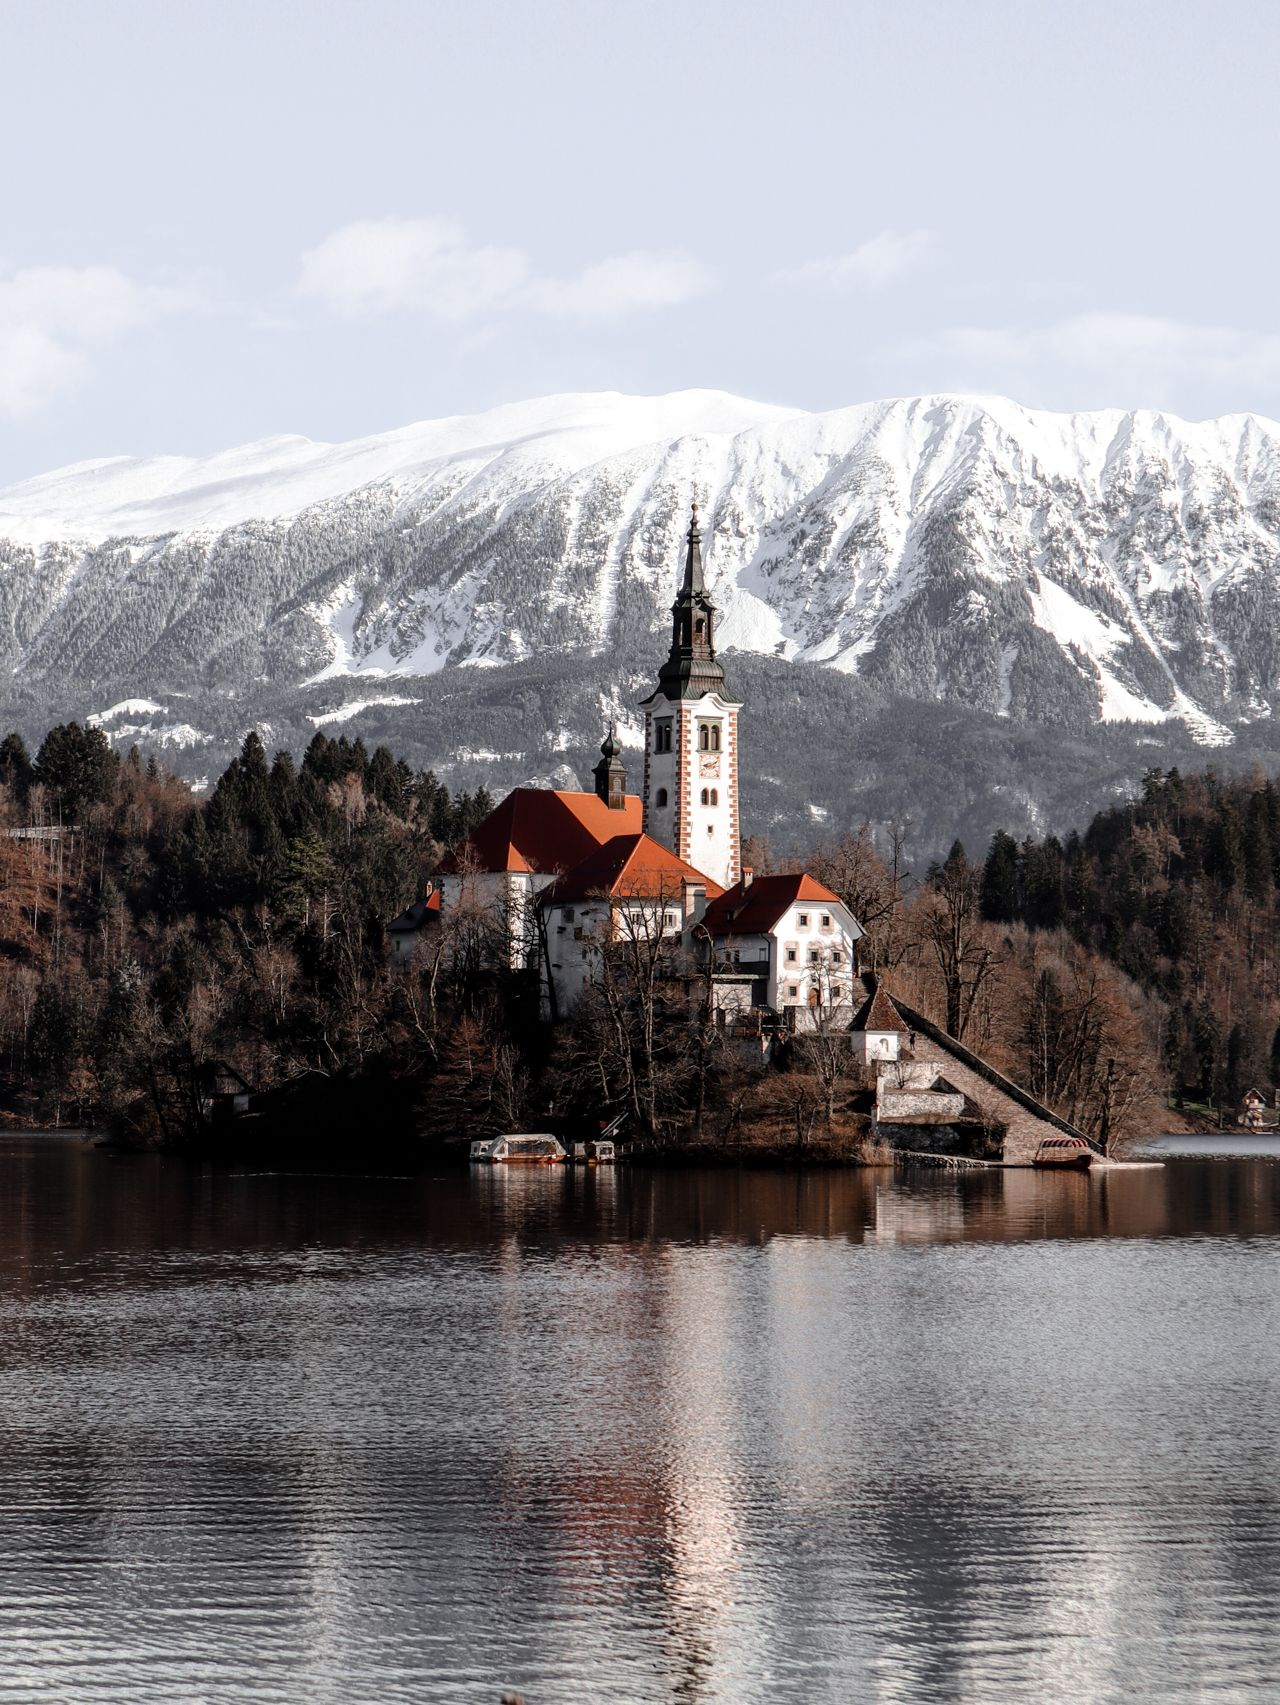 3 Days In Slovenia A Guide To The Lakes Ljubljana In 2020 Ljubljana Slovenia Travel Travel